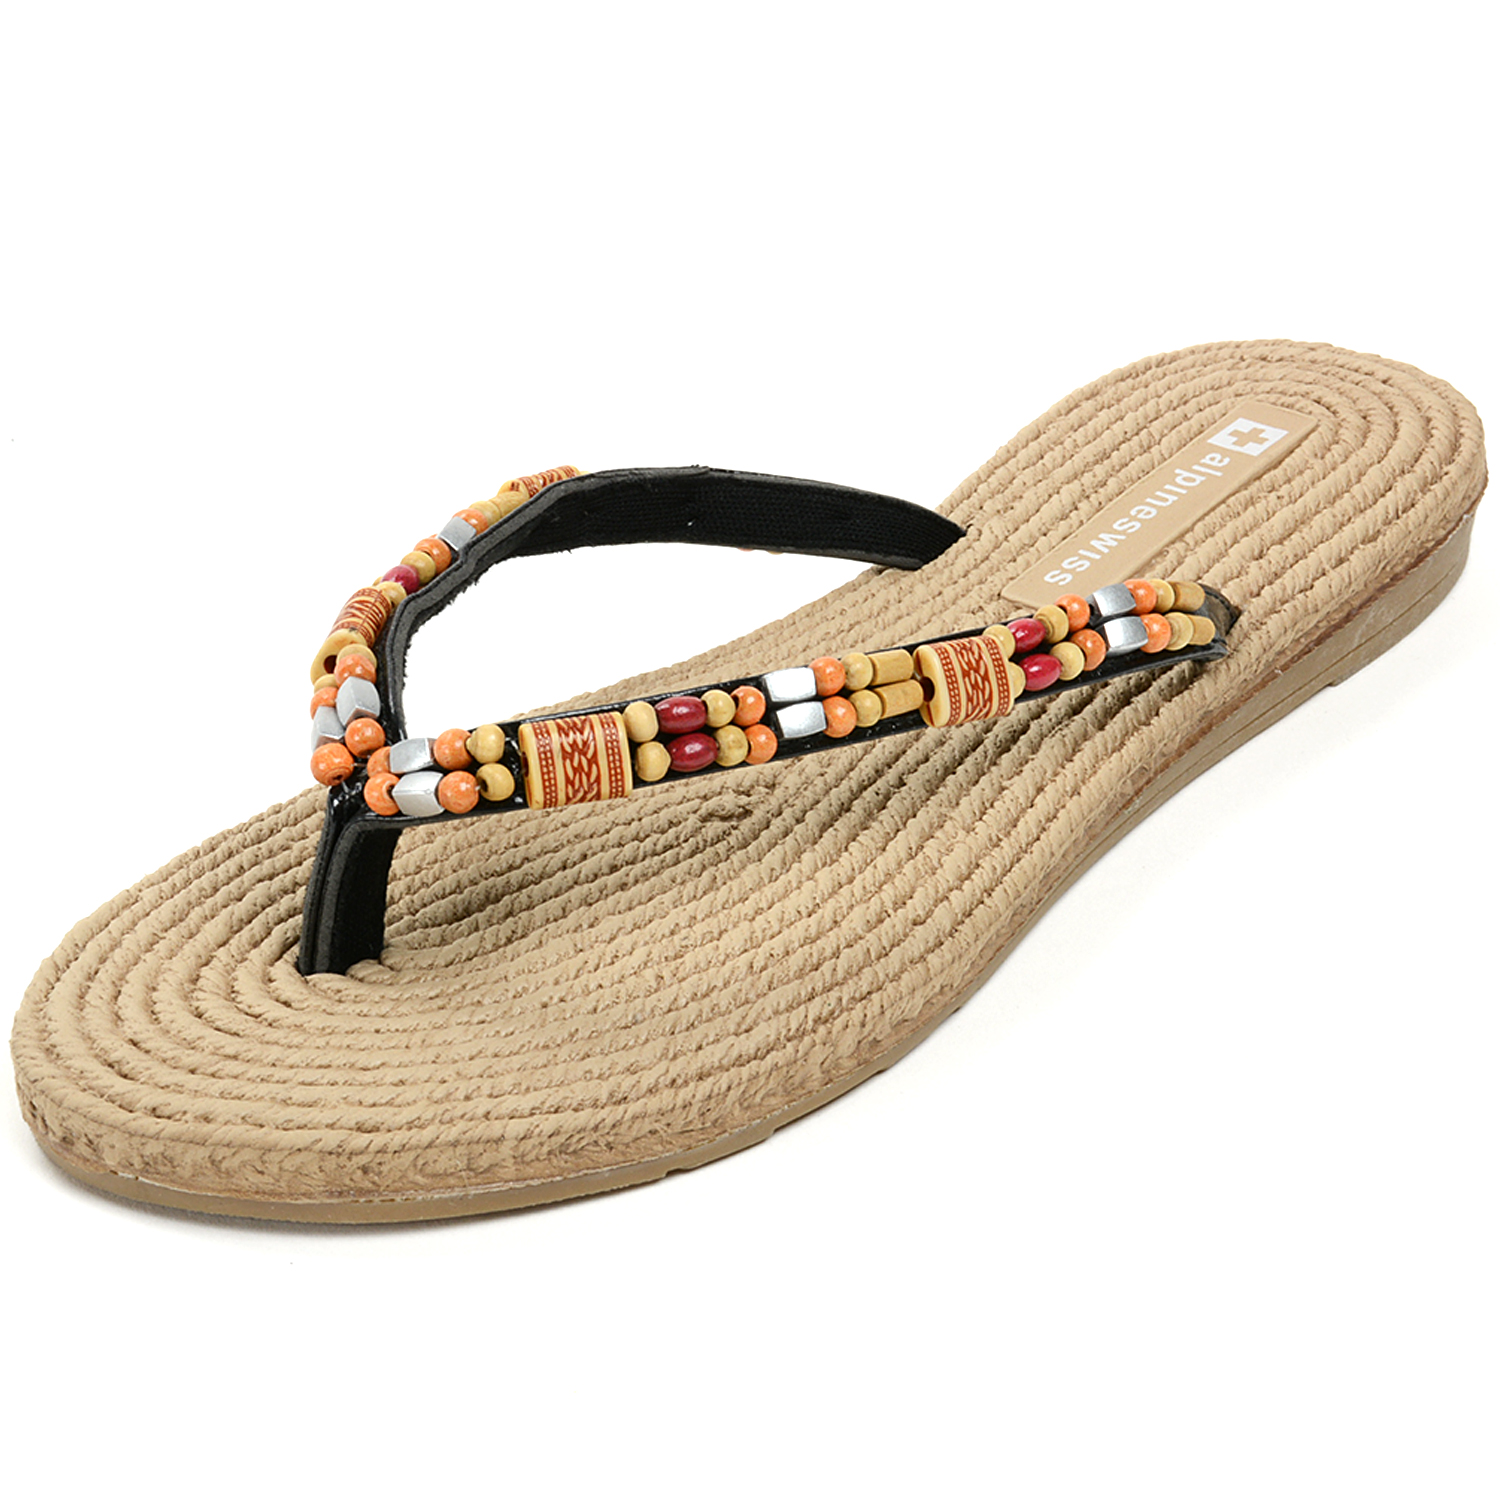 Alpine Swiss Women's Bohemian Sandals Wood Bead Thongs Comfort Flats Flip Flops